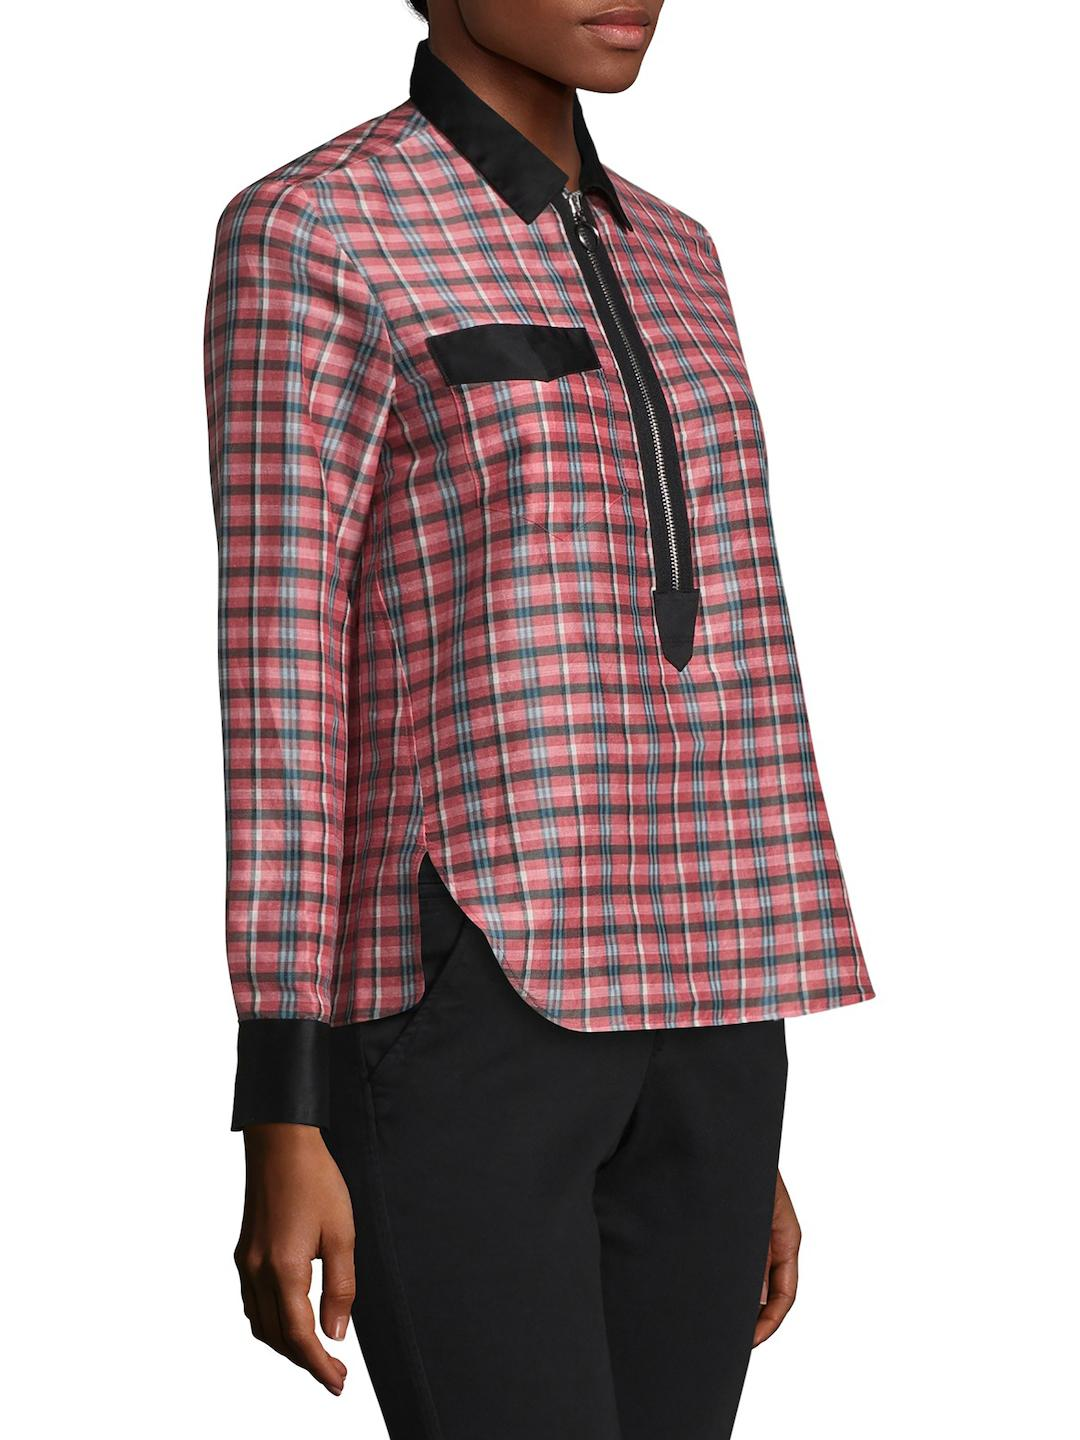 Isabel Marant Woman Poplin-trimmed Checked Ramie And Silk-blend Shirt Pink Size 40 Isabel Marant Free Shipping Inexpensive uNQWEkUDFR